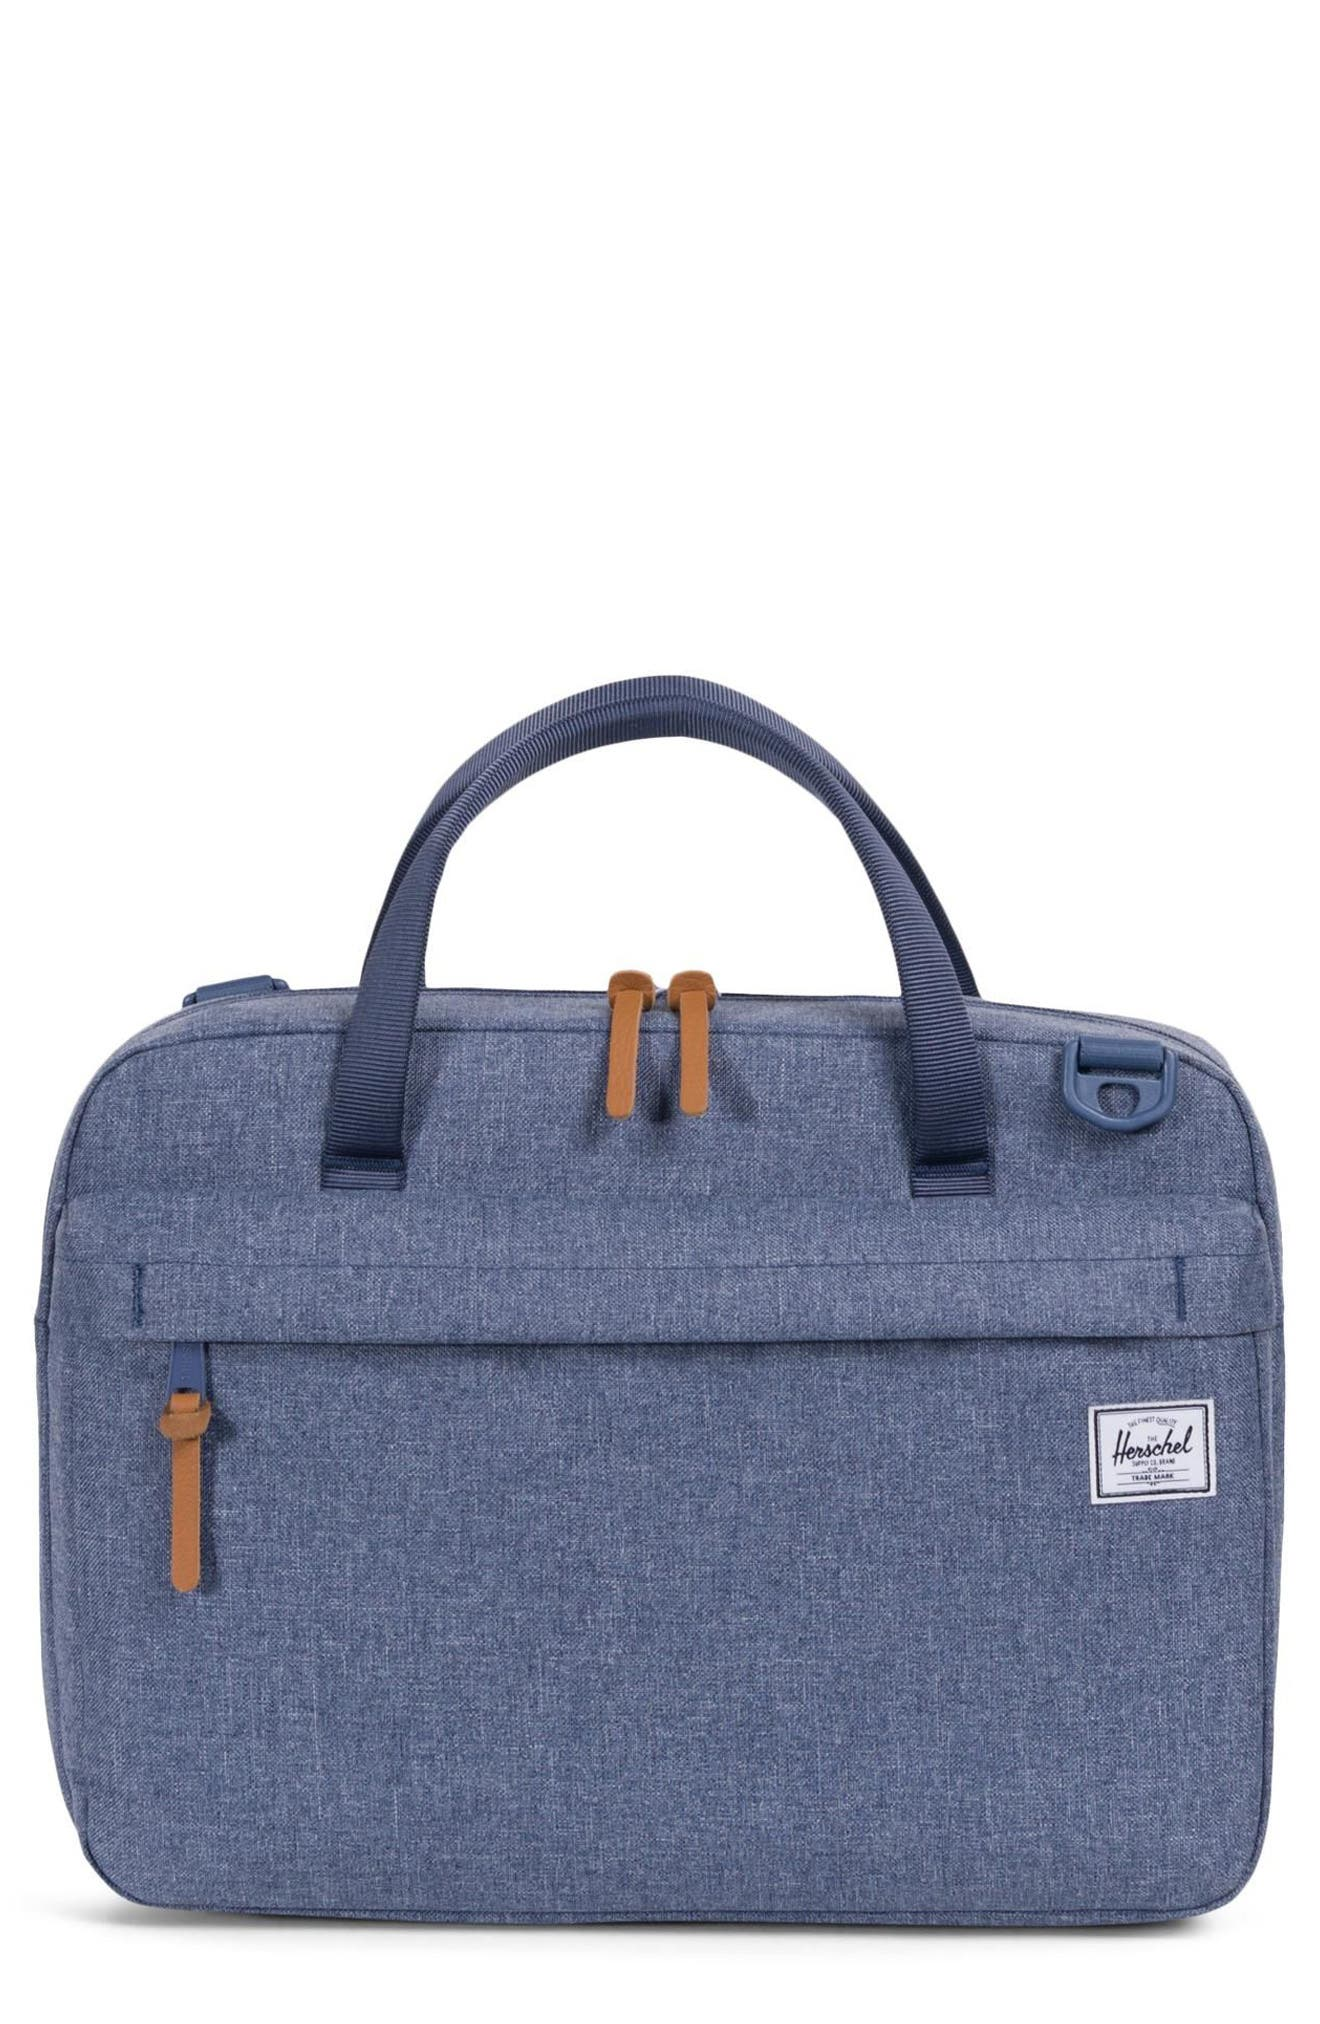 Main Image - Herschel Supply Co. Gibson Messenger Bag